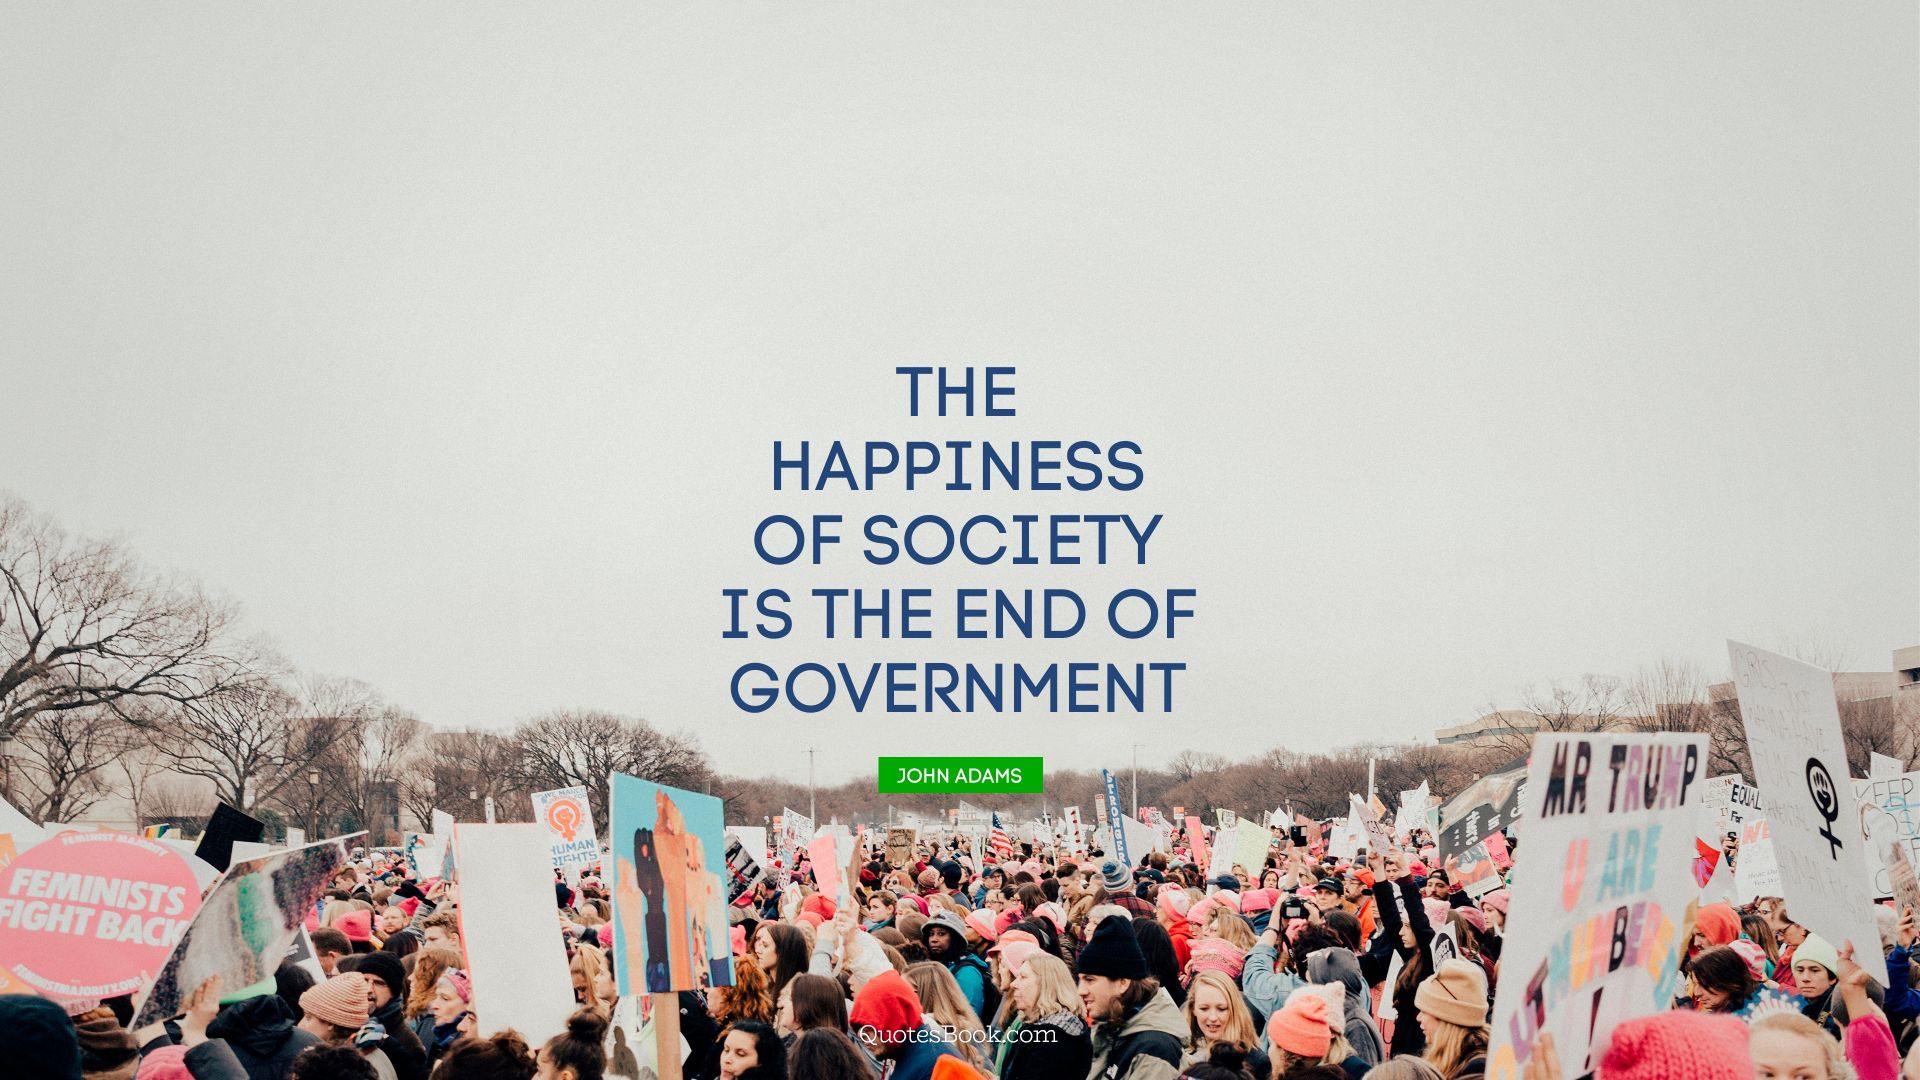 The happiness of society is the end of government. - Quote by John Adams